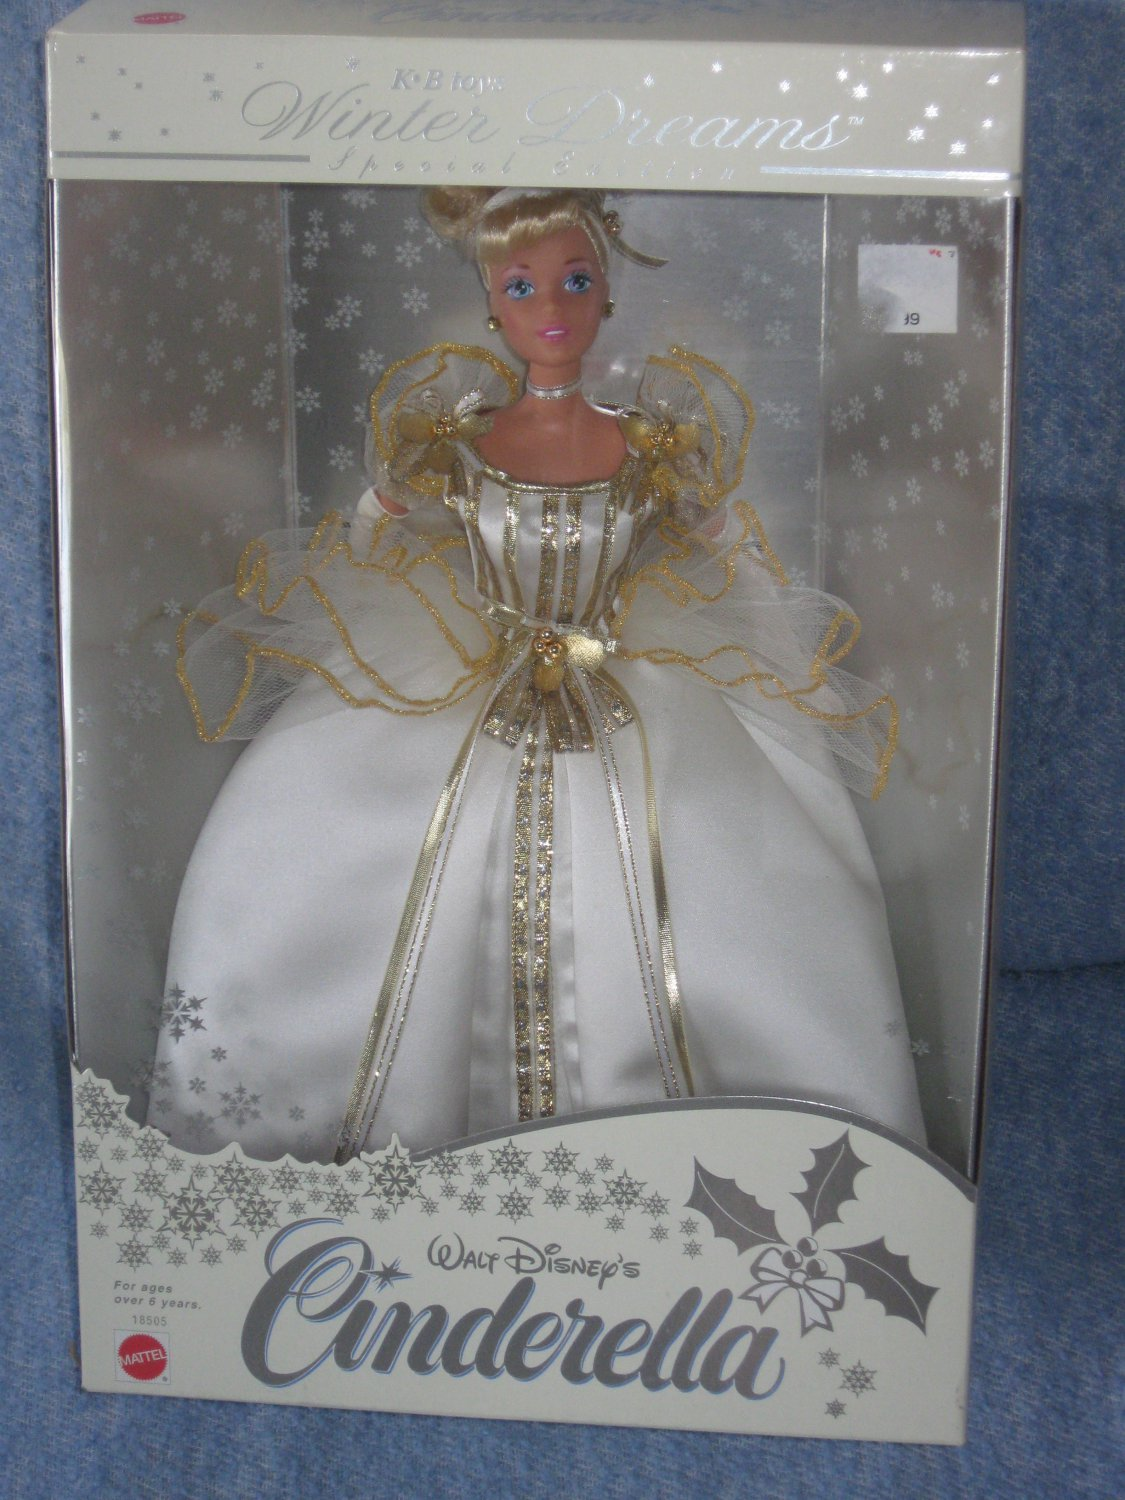 Barbie as Cinderella, KB Toys Winter Dreams Special Edition 1997 Added Shipping Cost Outside USA